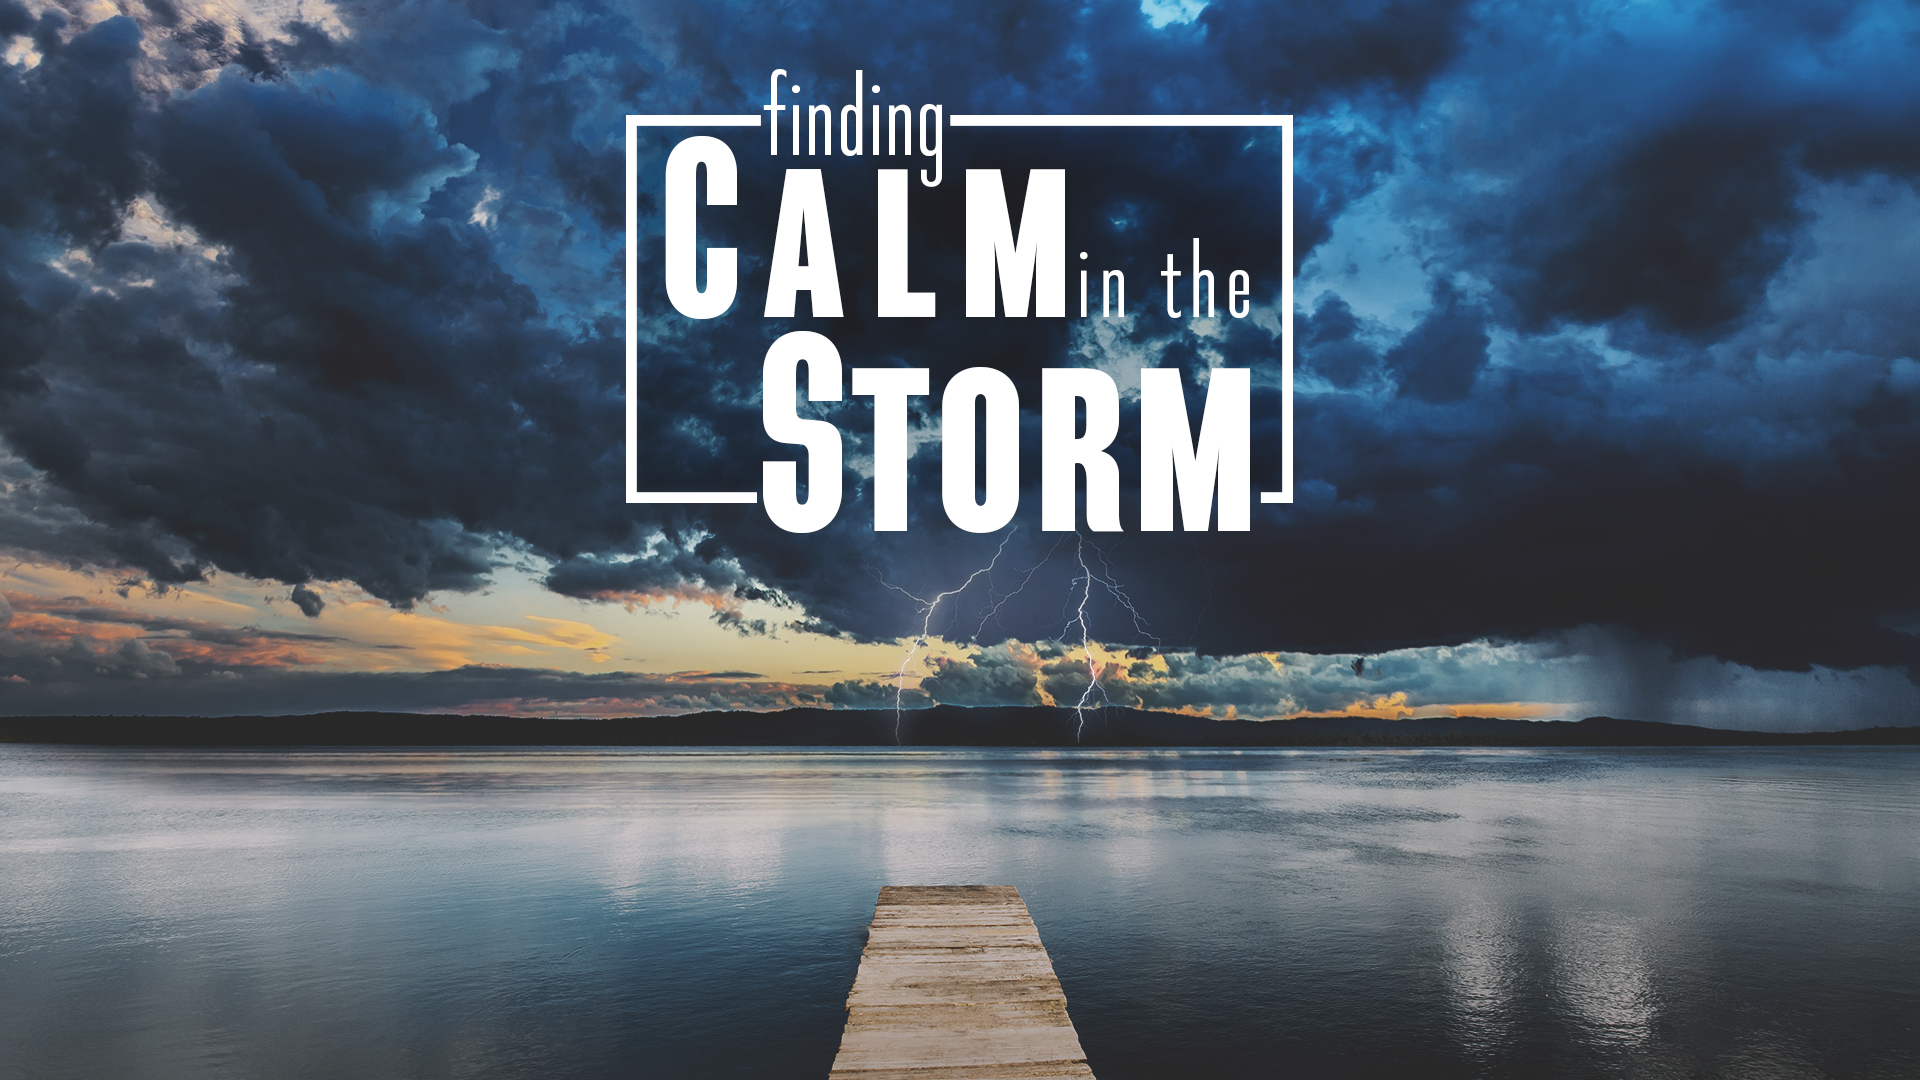 Finding Calm in the Storm